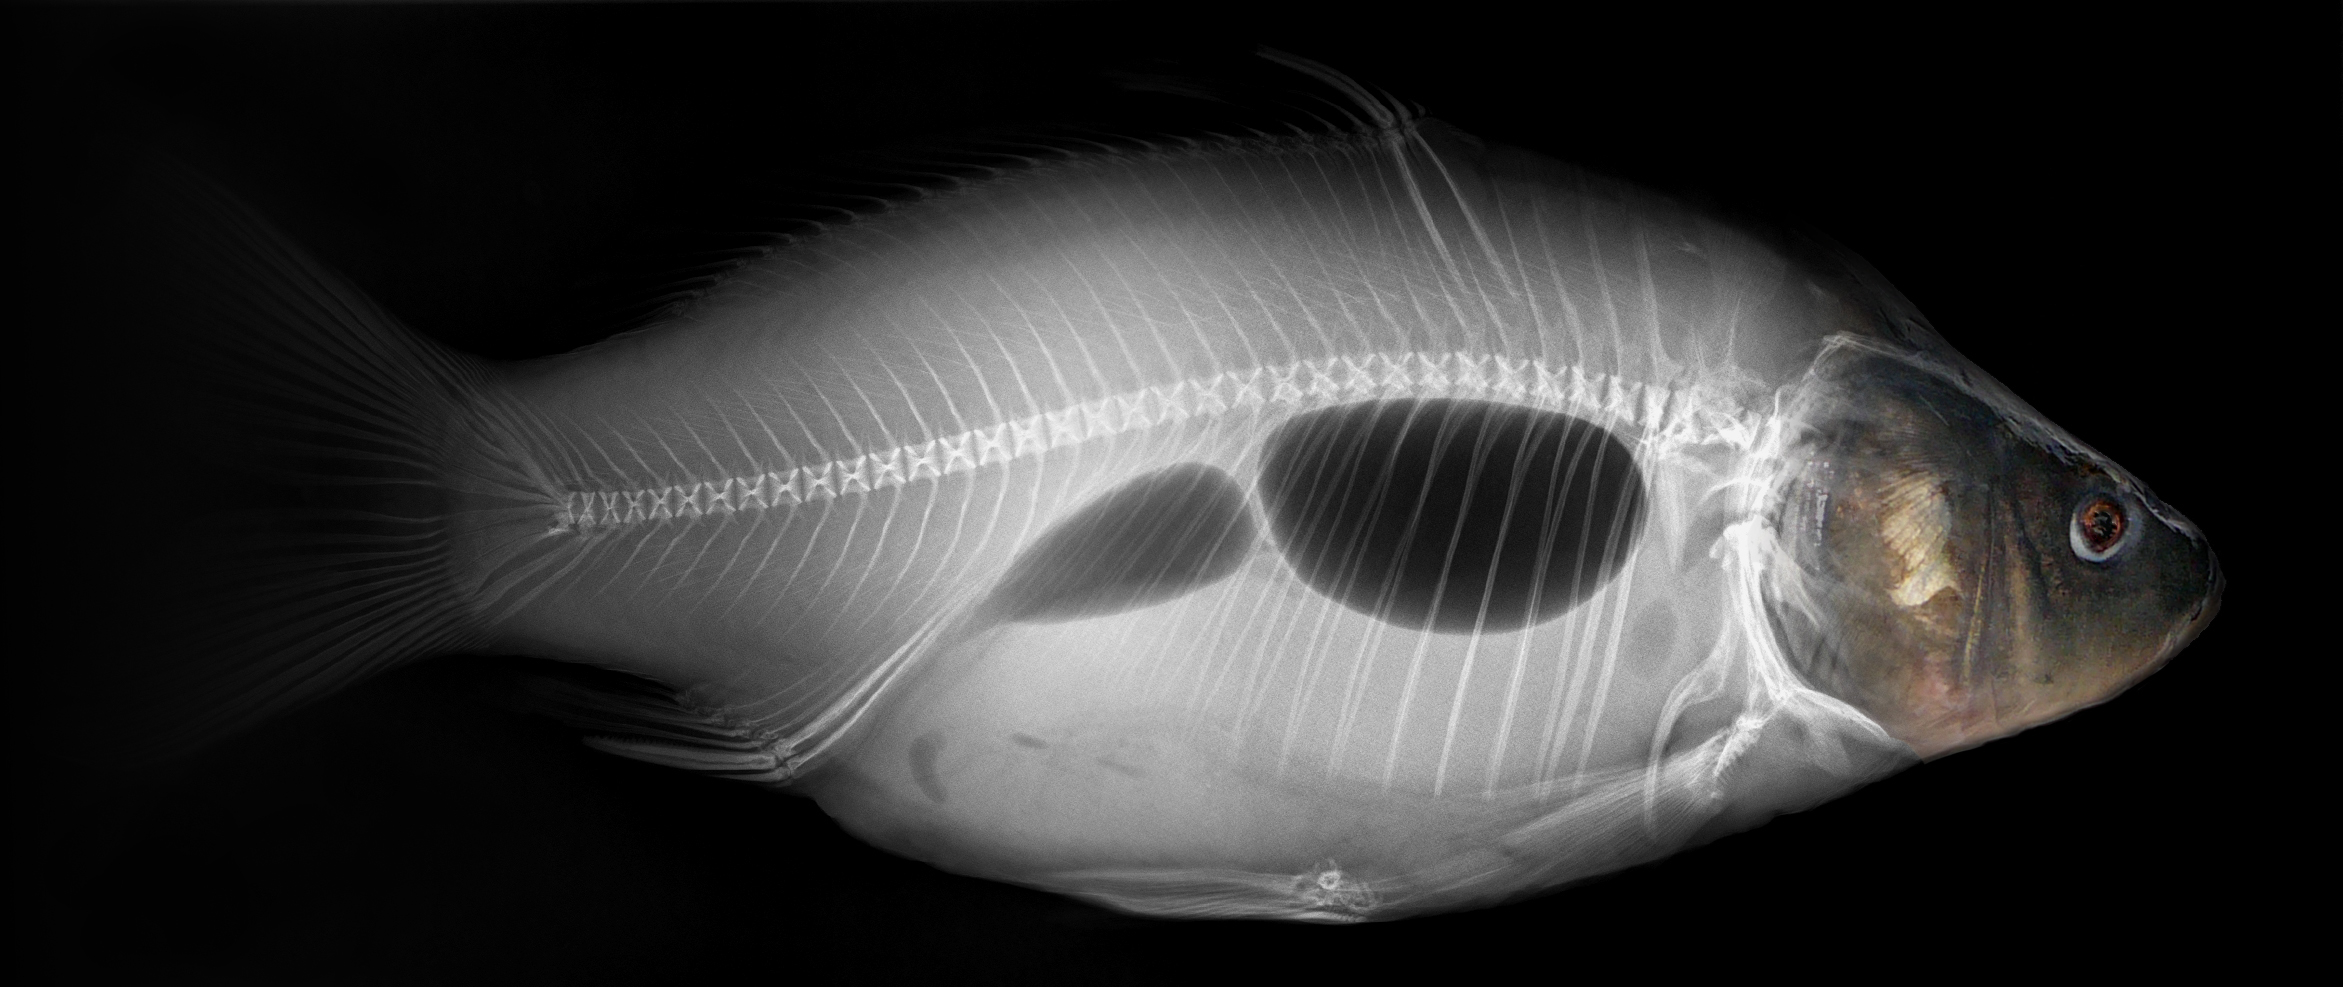 Datei:Common carp x-ray.jpg – Wikipedia